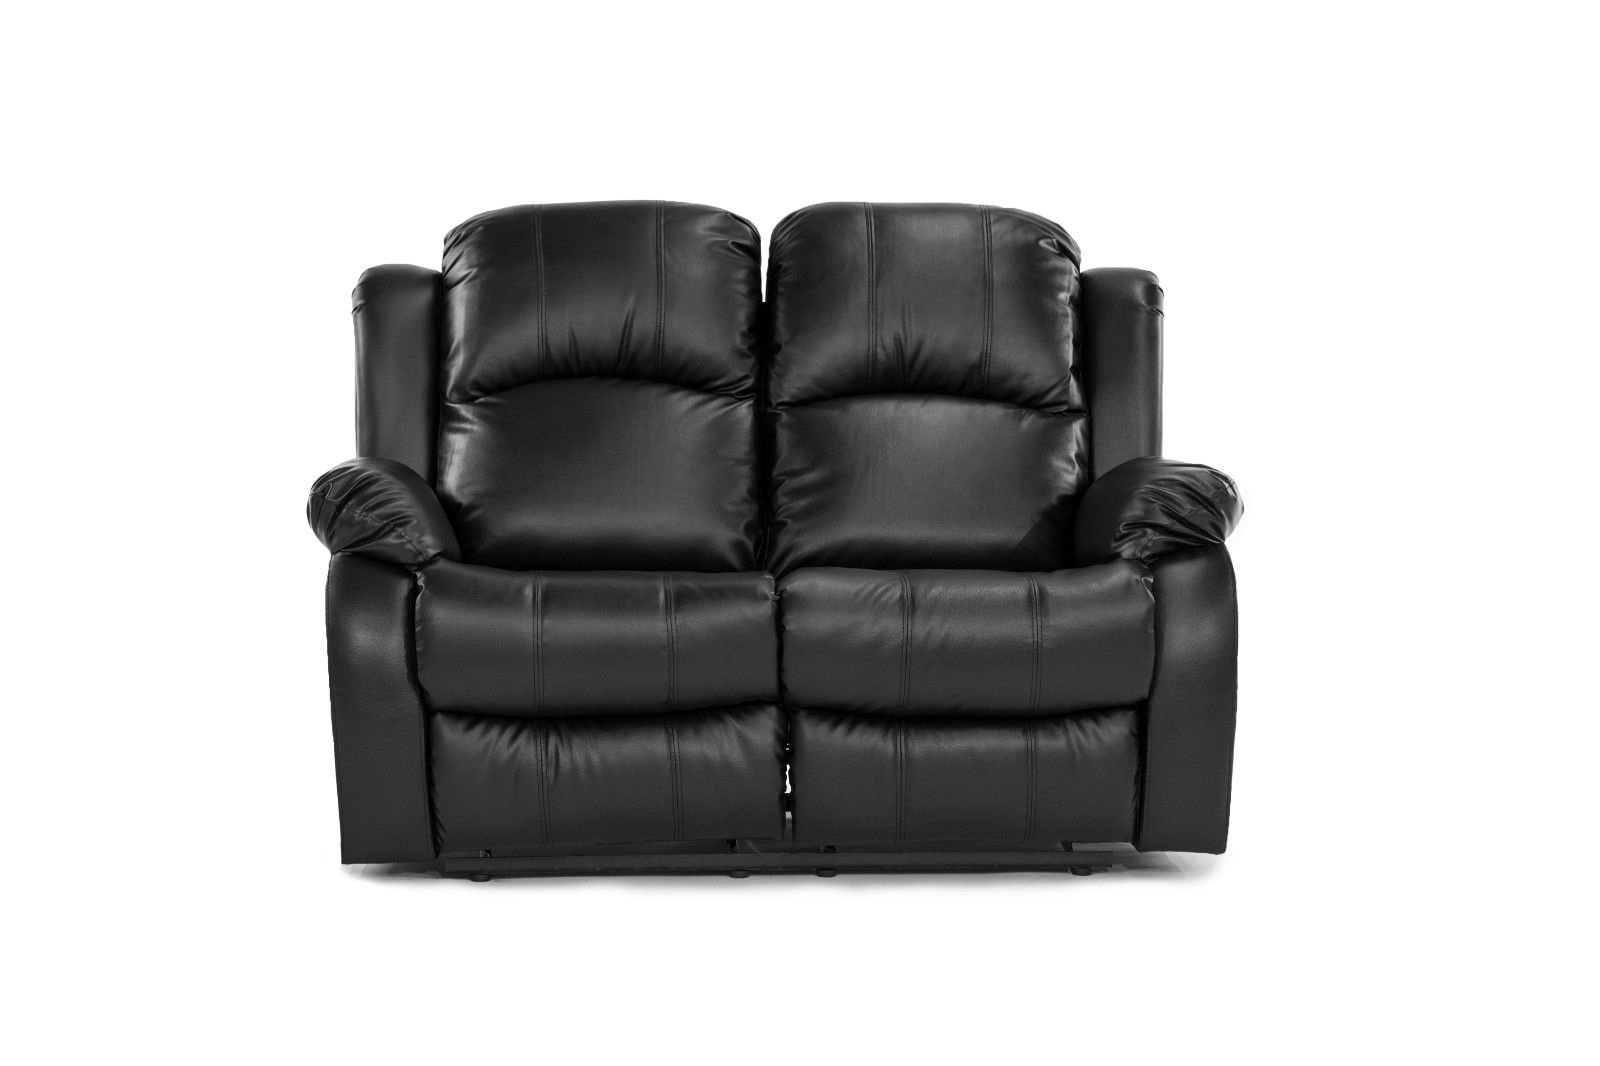 Details About Black Recliner 2 Seater Love Seat Over Stuffed Bonded Leather Chair